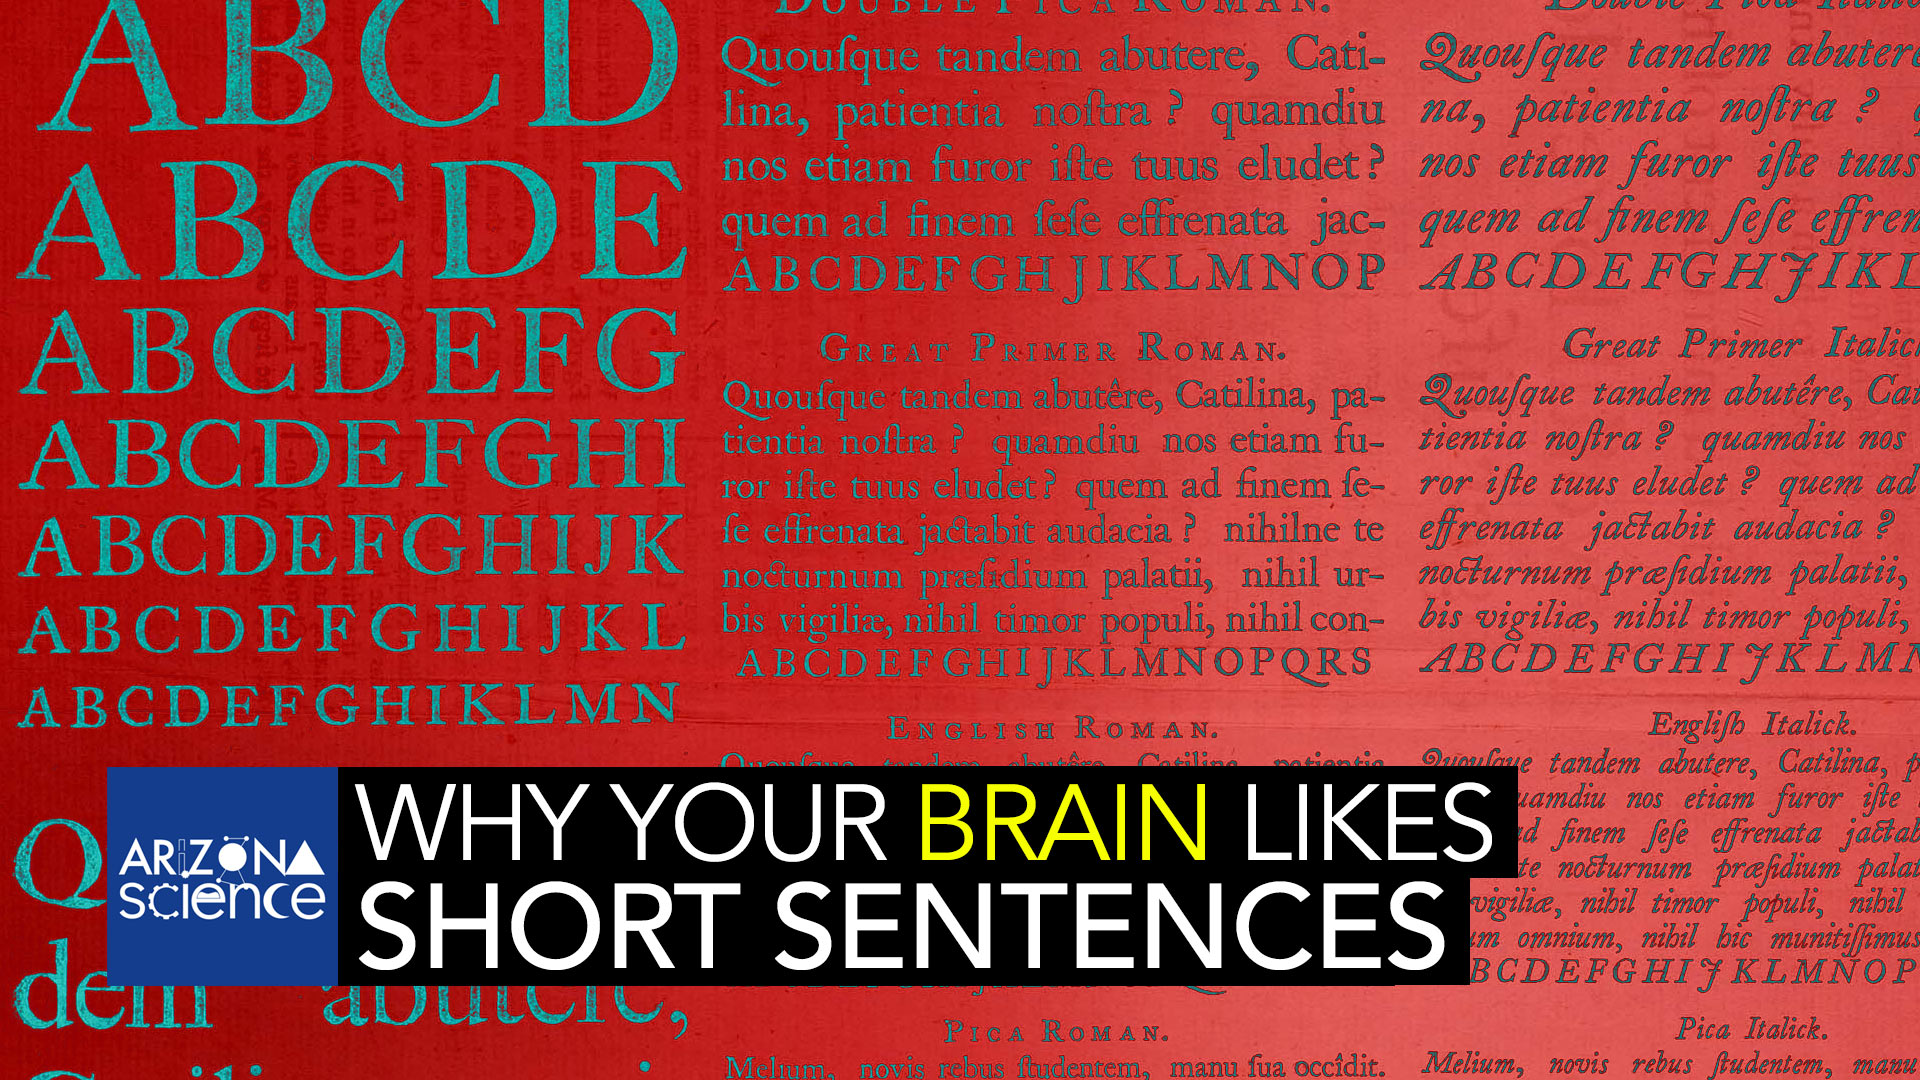 A new study reveals that across all languages, our brains prefer shorter sentences.